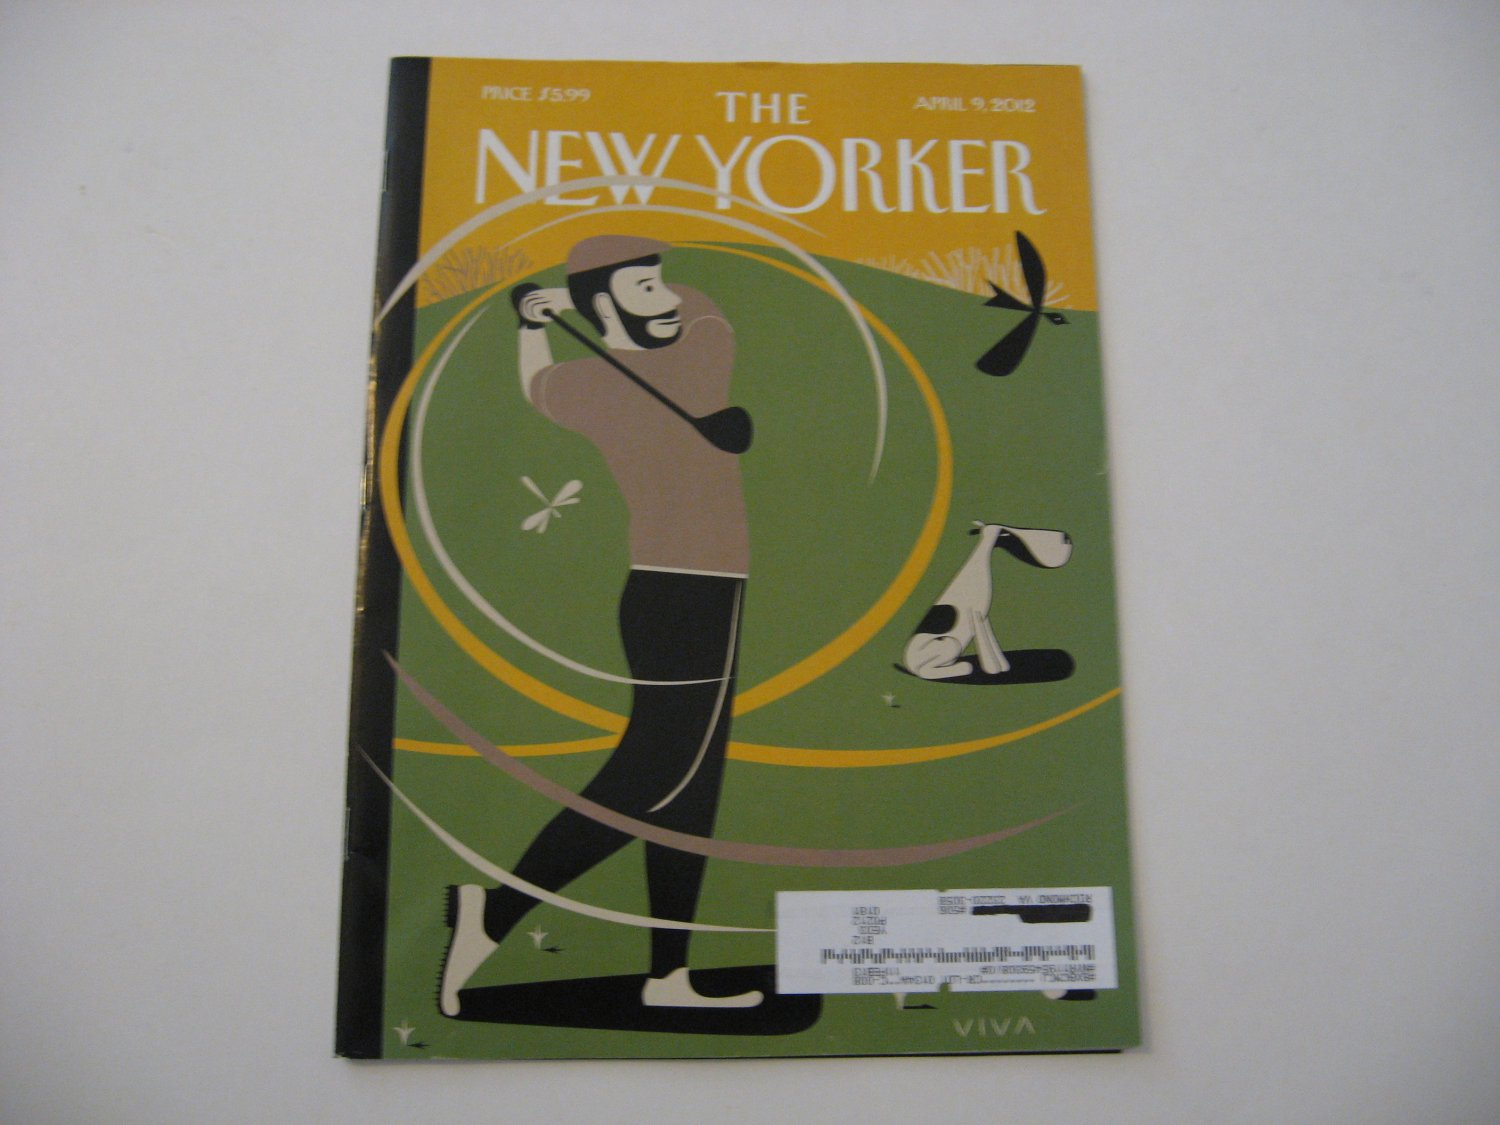 The New Yorker Magazine - April 9, 2012